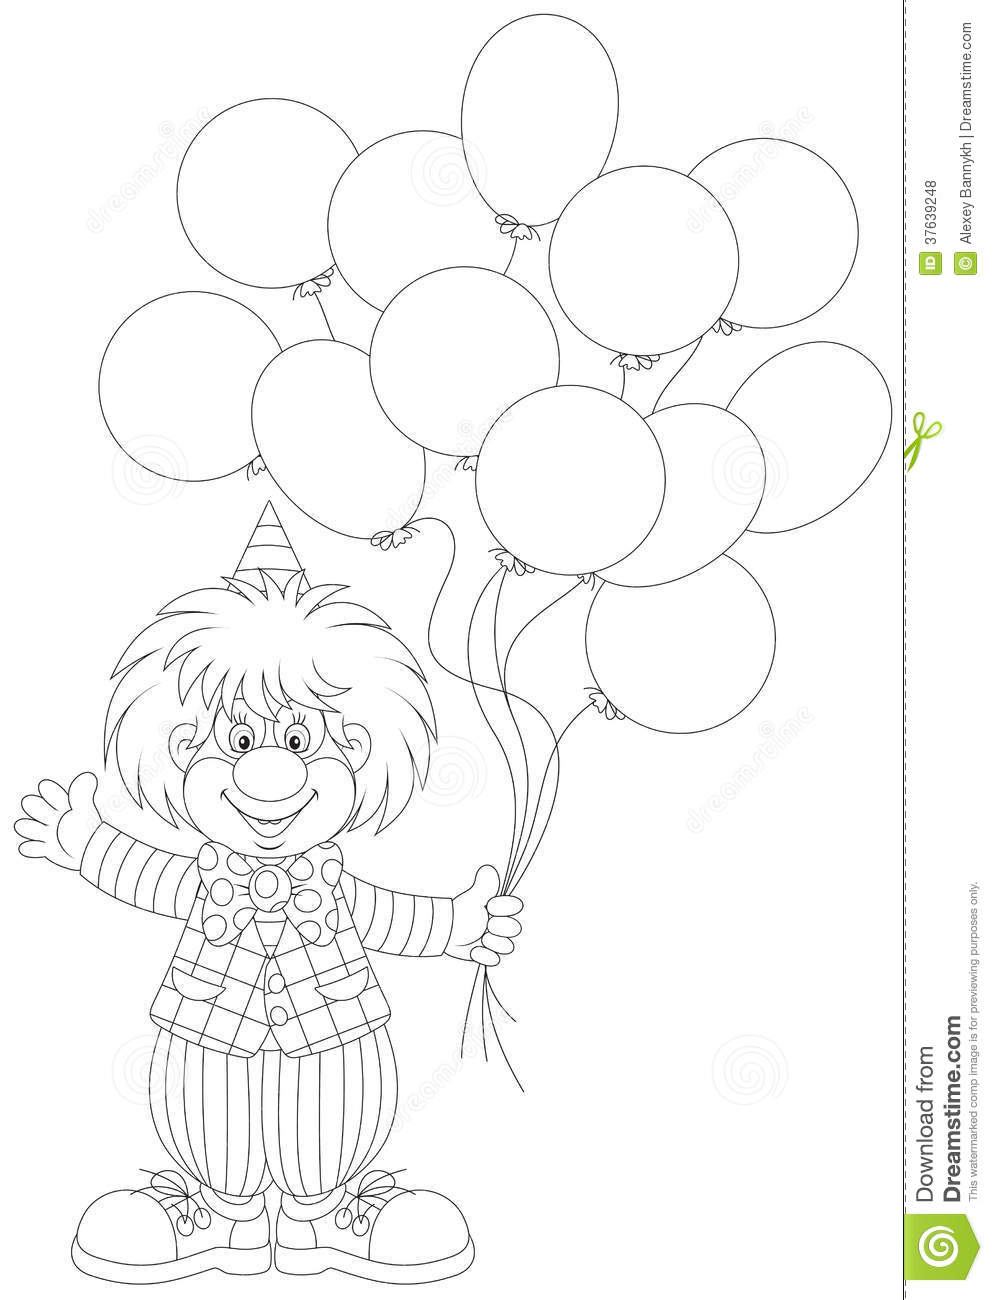 Clown Coloring Pages furthermore Odd Pencil Drawings additionally Clipart LcKazgBca furthermore Two Fun And Easy Shark Games For Shark as well 72157632799134725. on scary balloon drawings